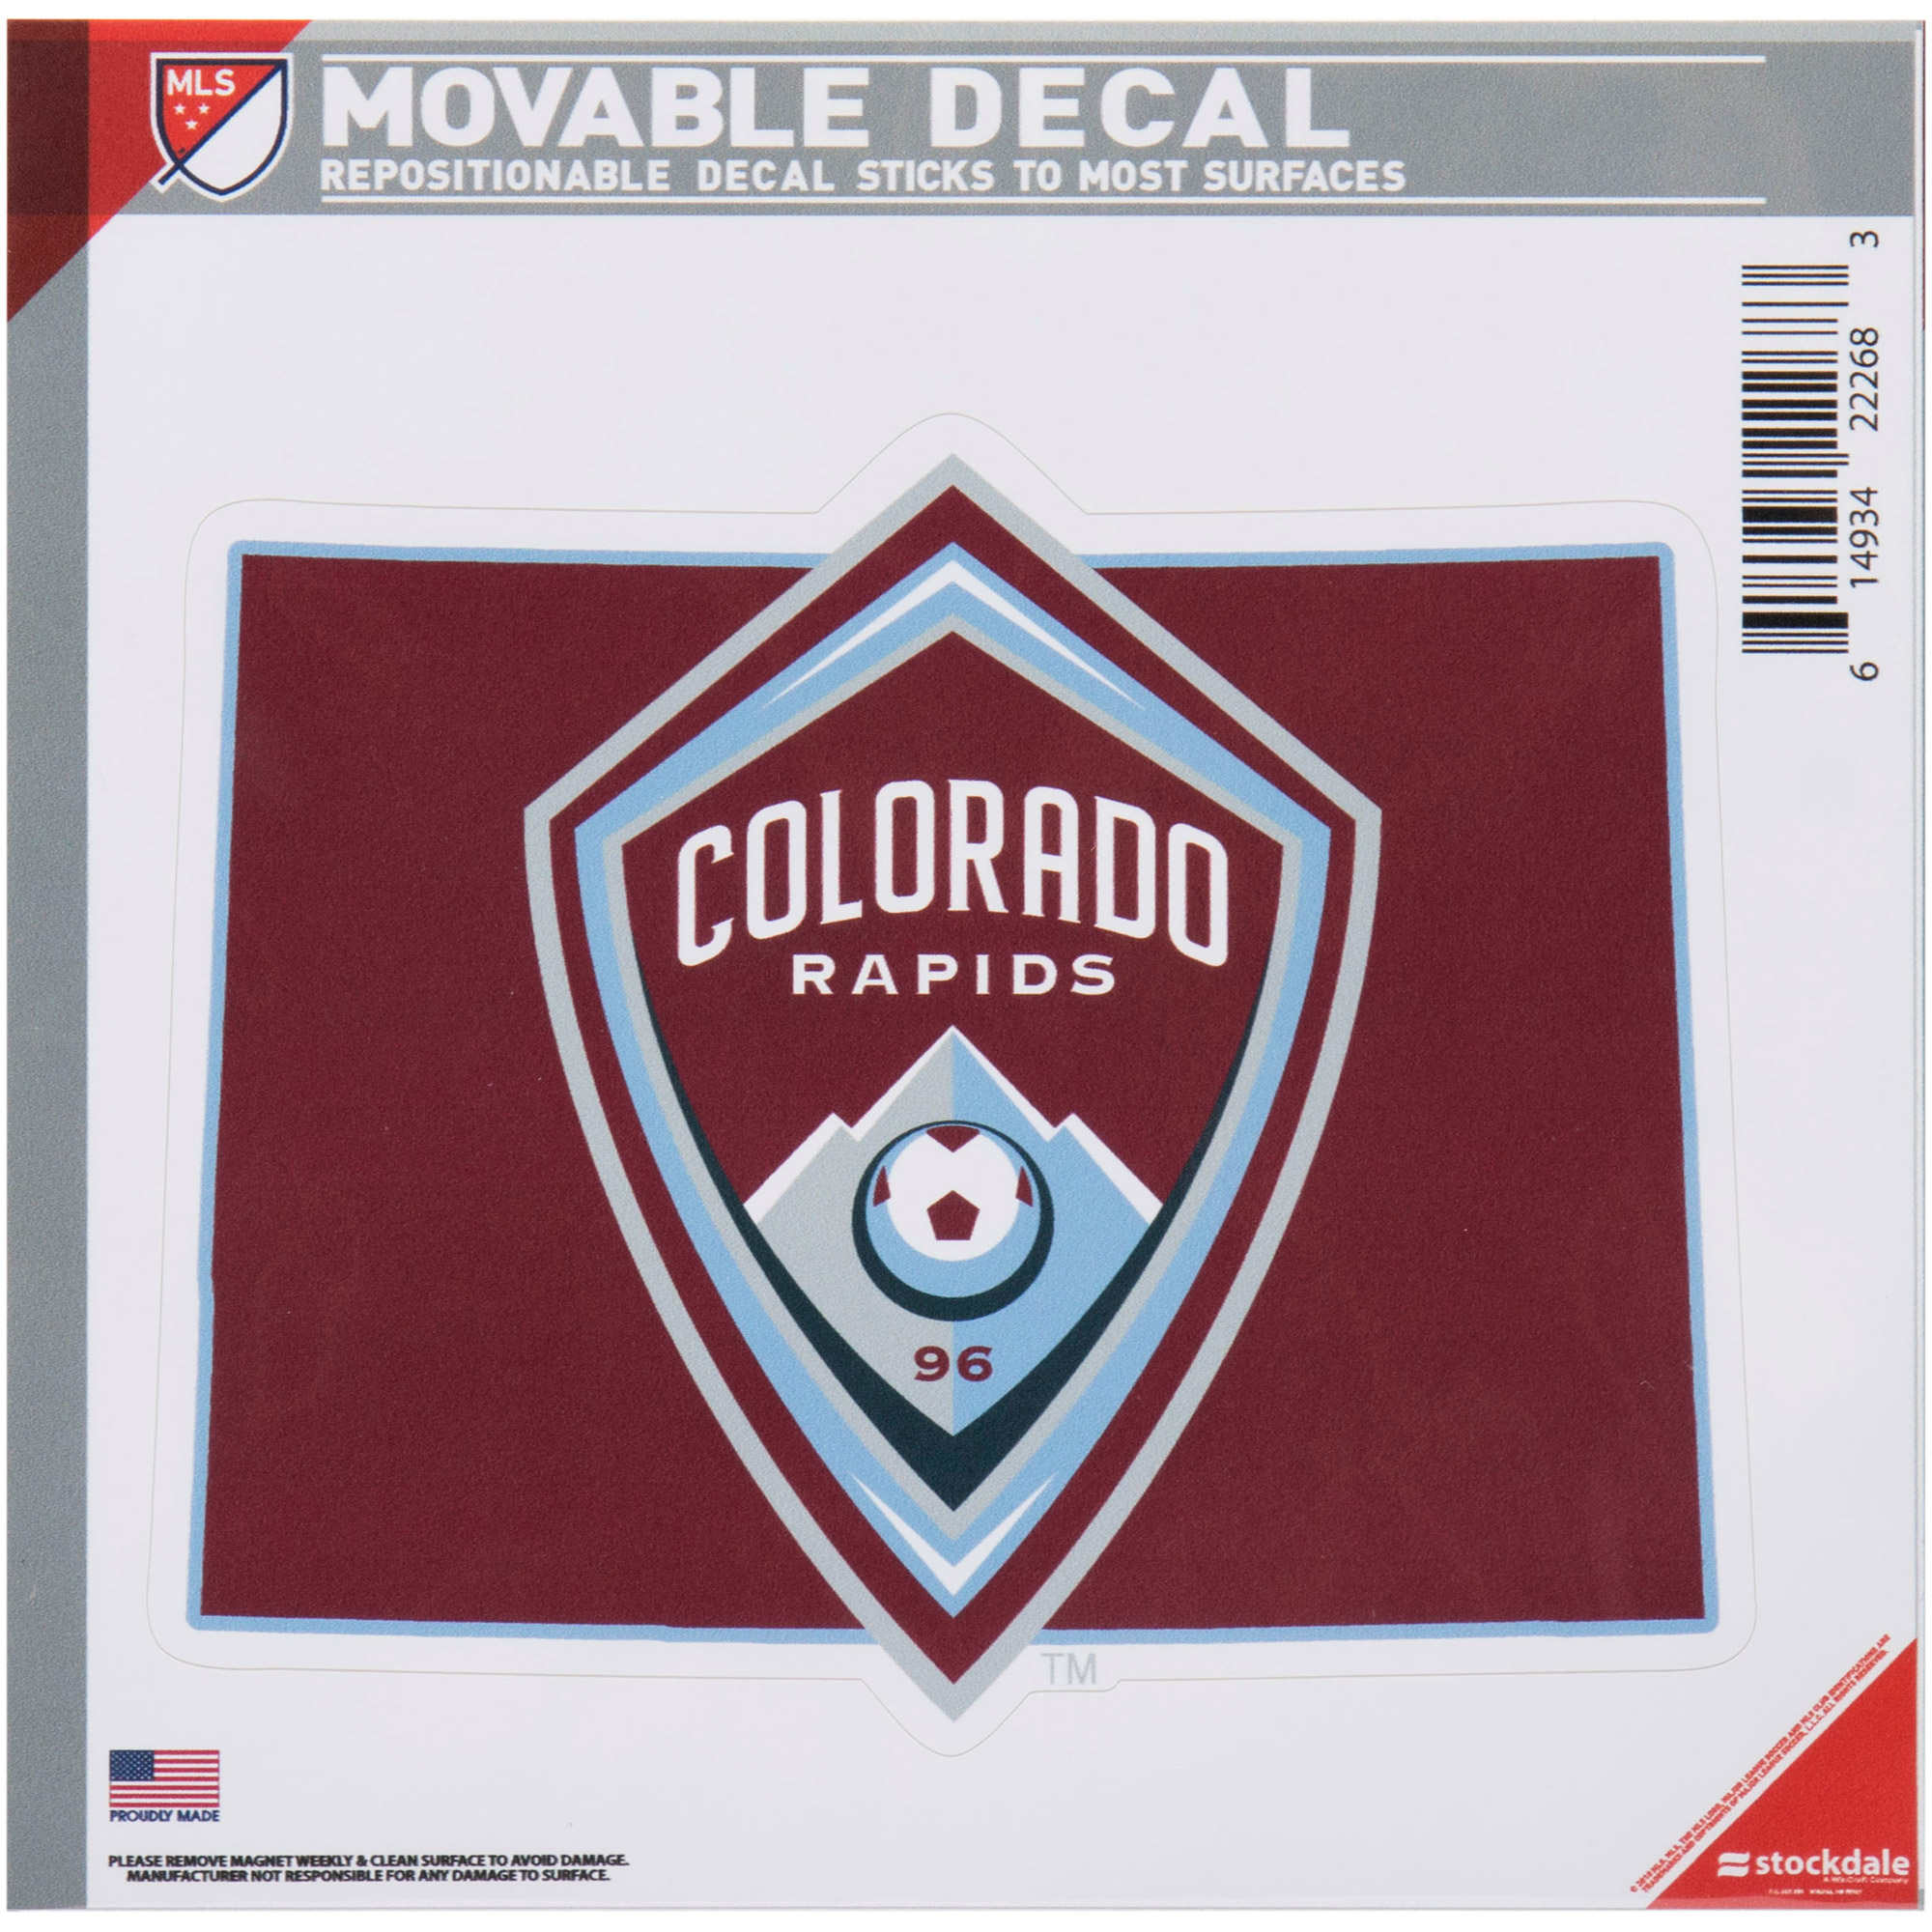 Colorado Rapids All Surface State Decal Logo - No Size